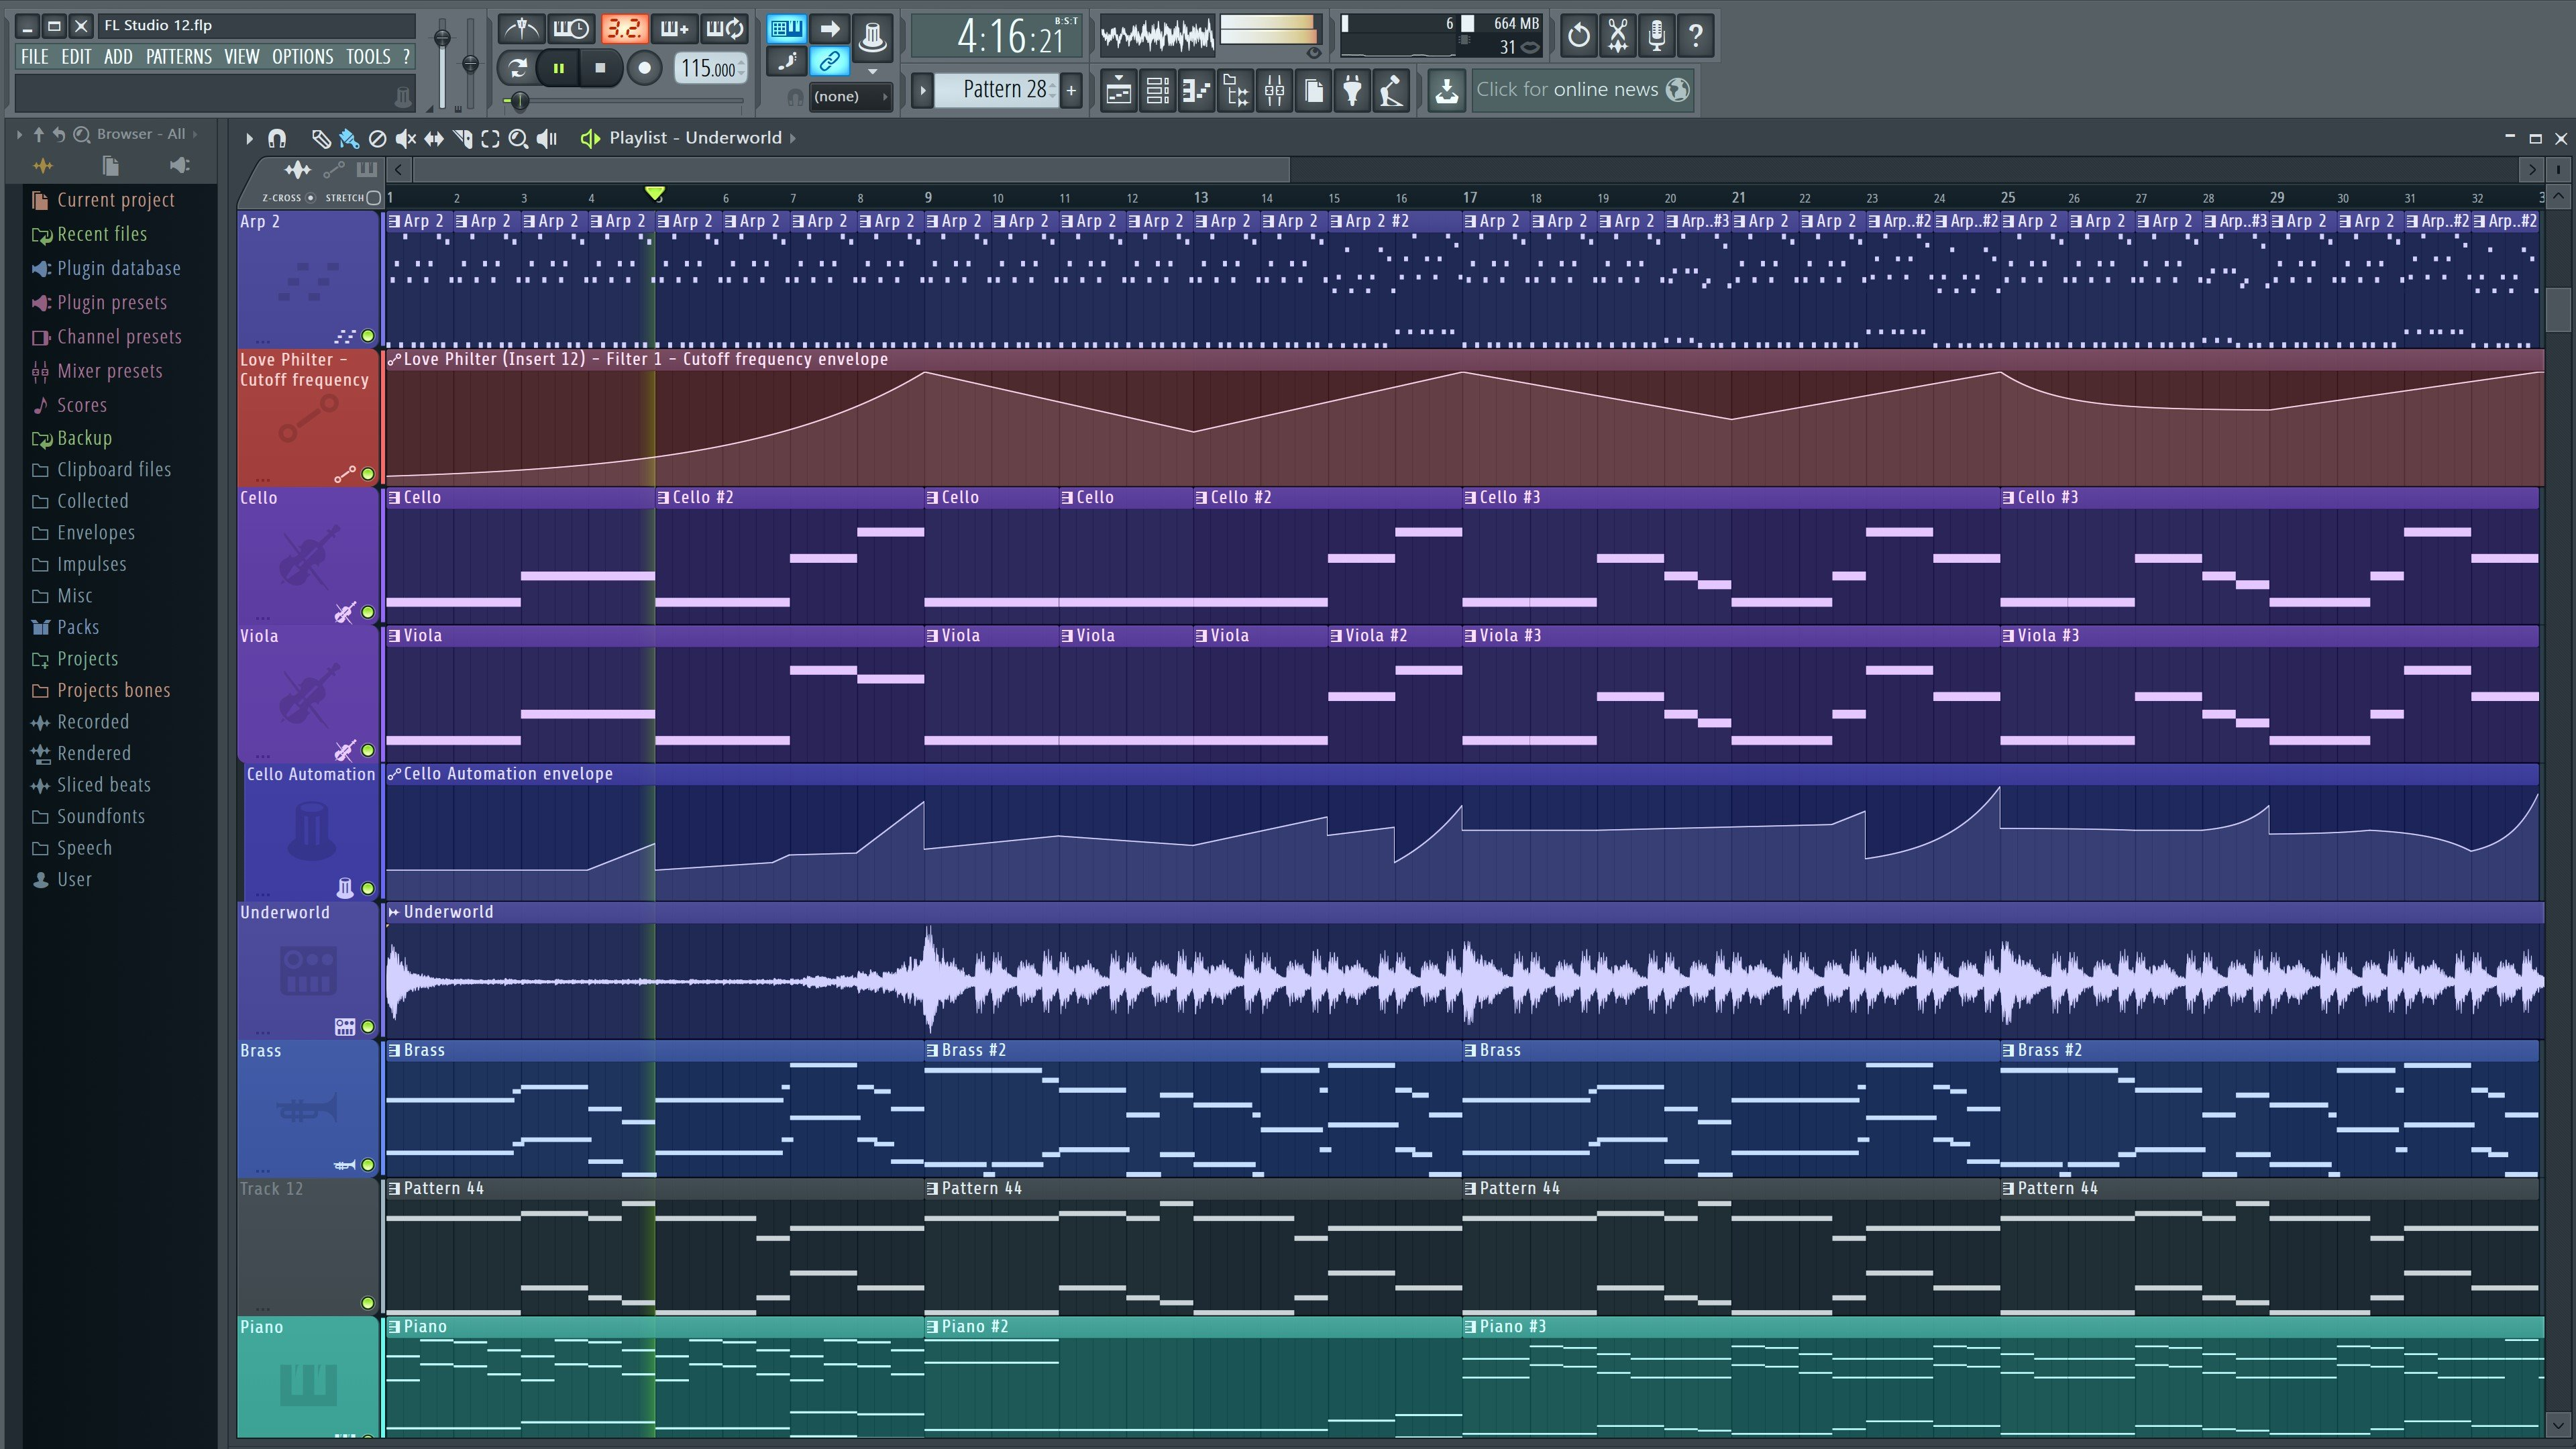 fl studio 12 full version price